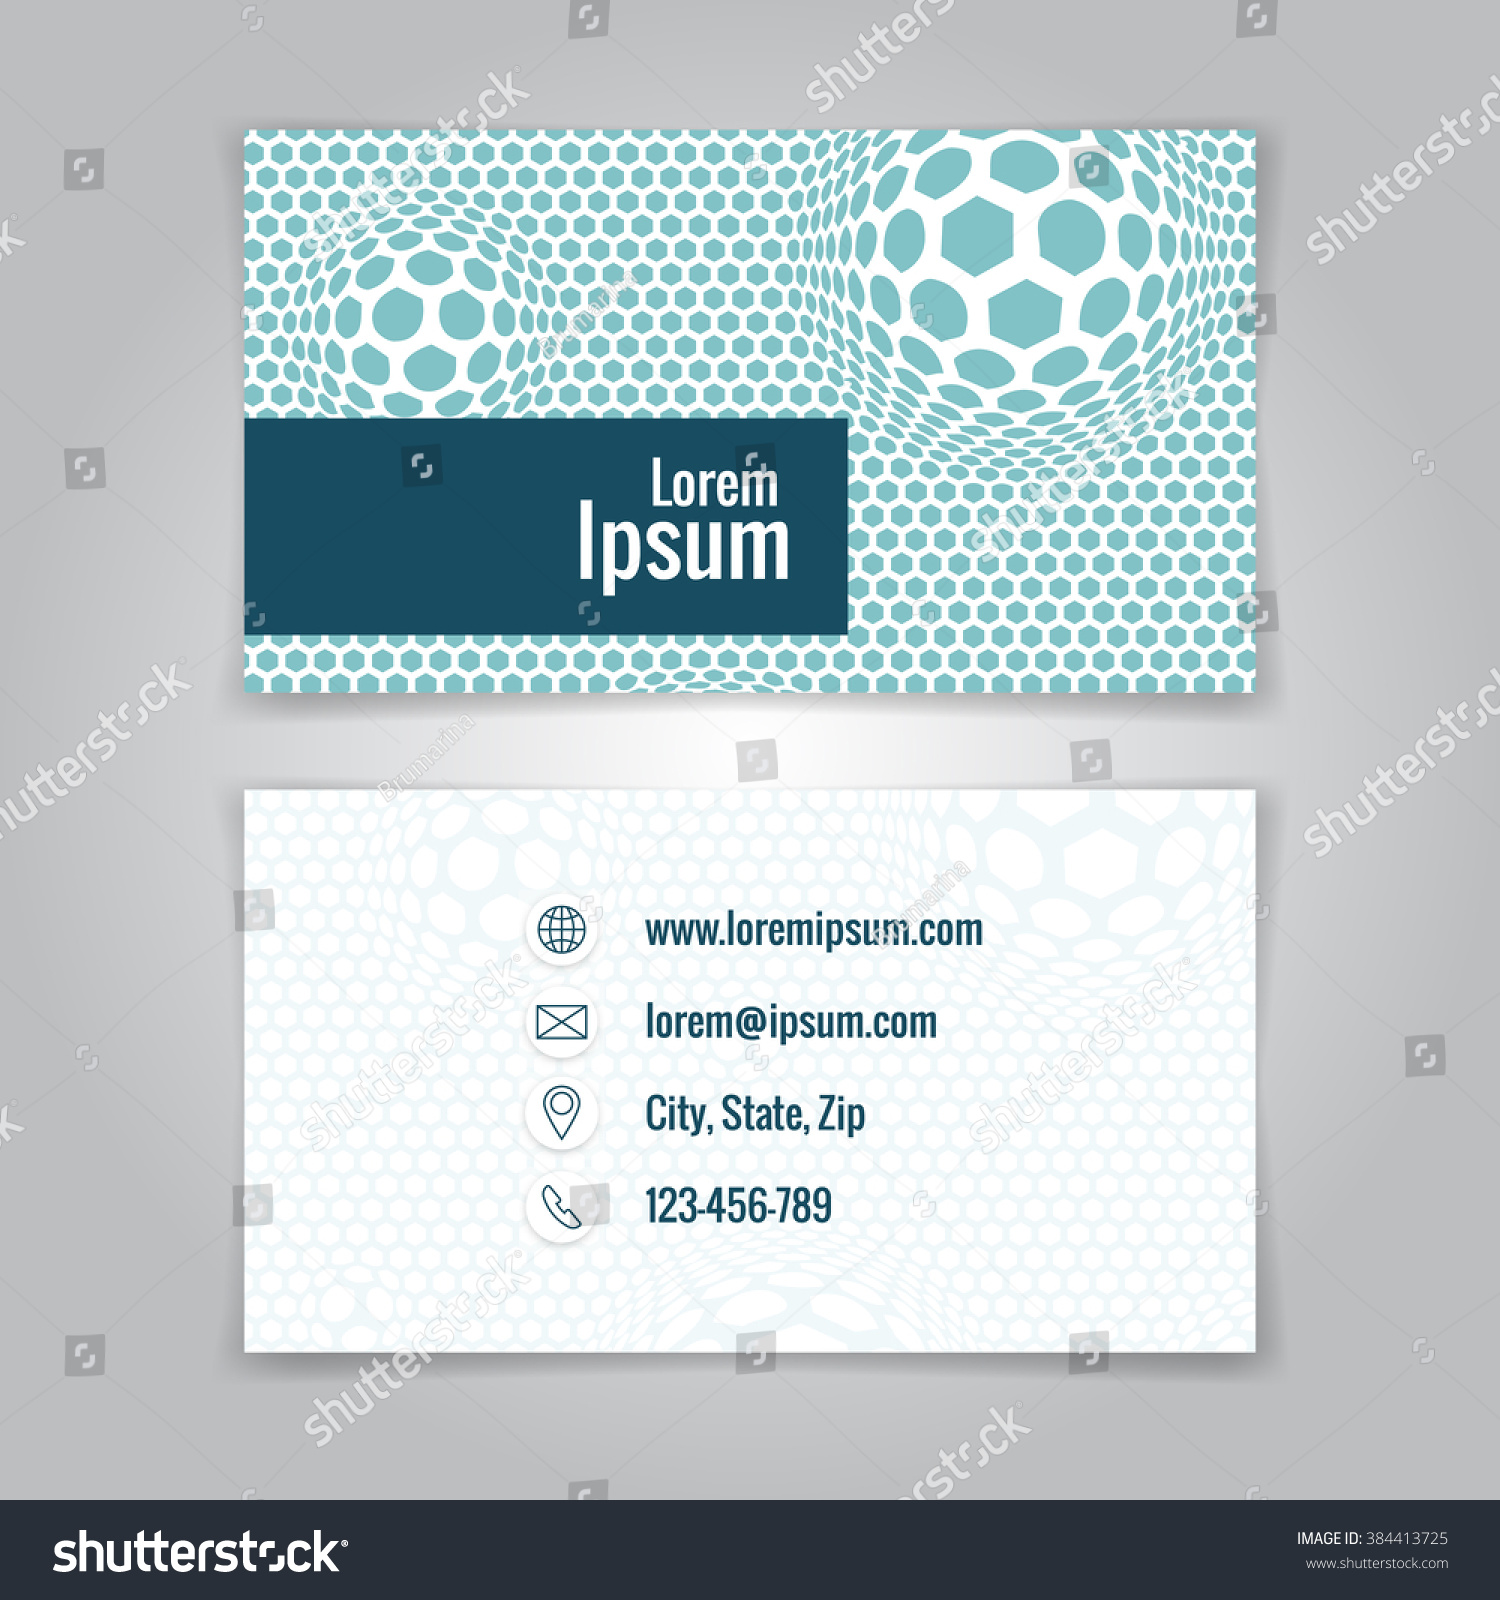 Modern Simple Business Card Template Card Stock Illustration ...